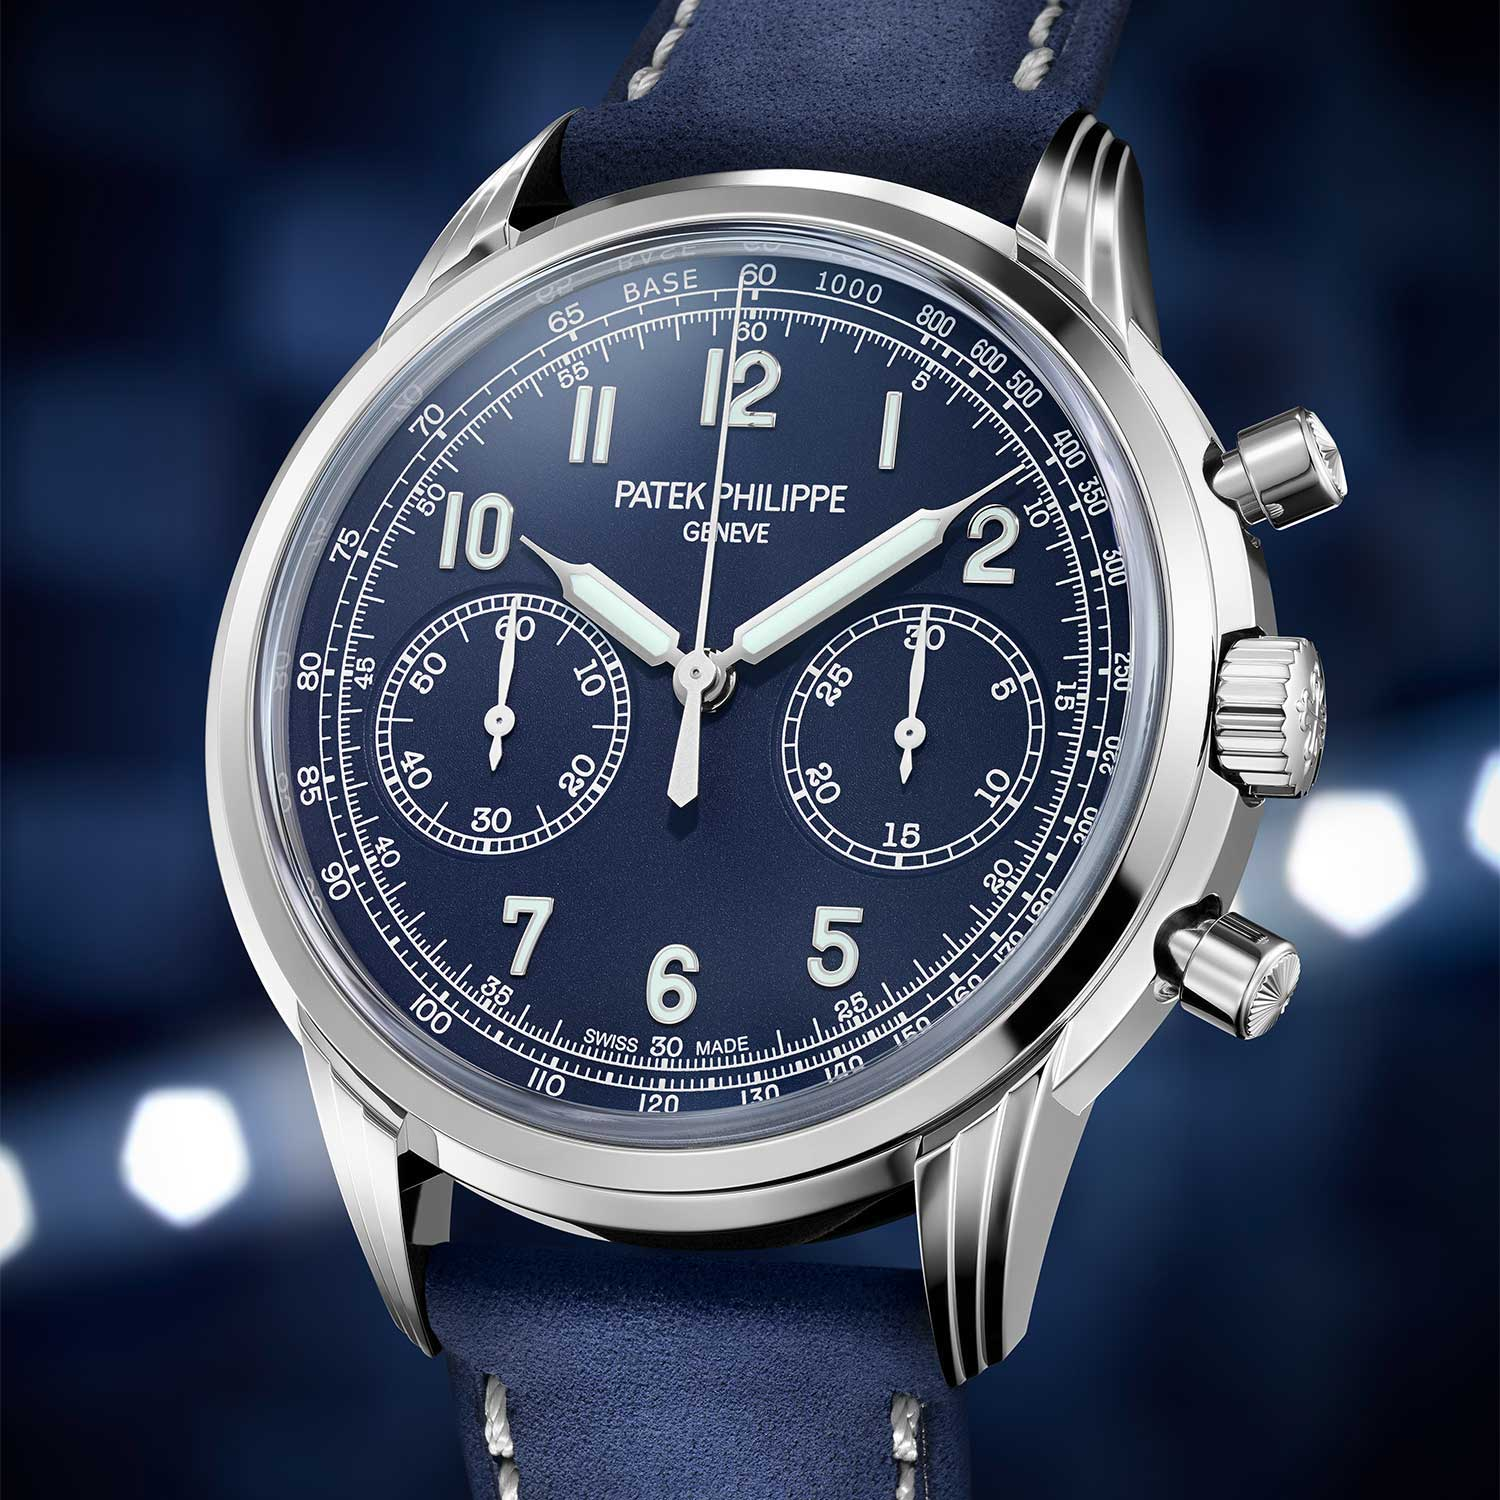 The Patek Philippe Ref. 5172G-001 powered by caliber CH 29-535 PS